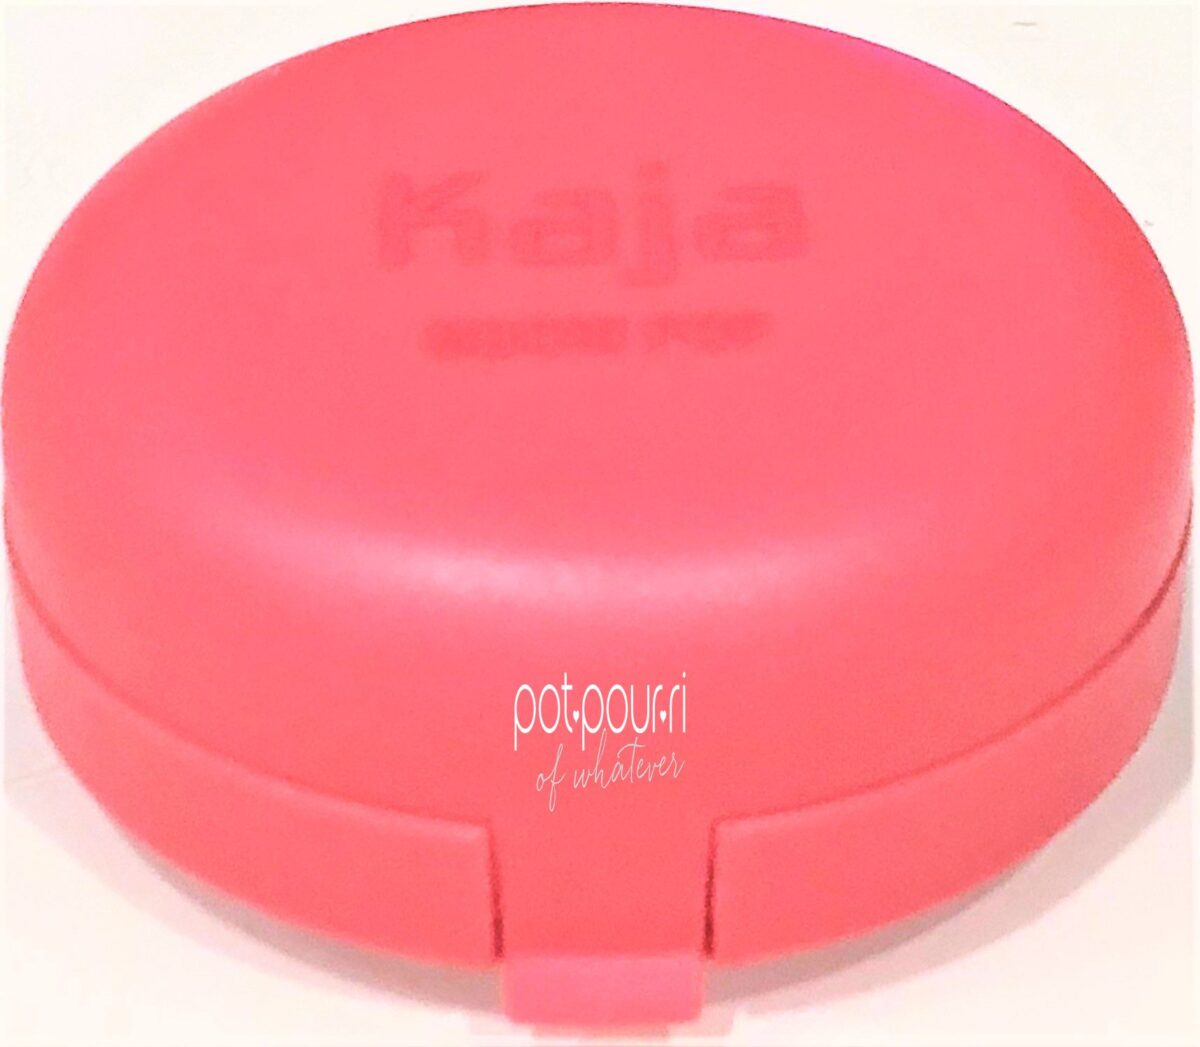 KAJA COMPACT SAME SHADE AS BLUSH INSIDE